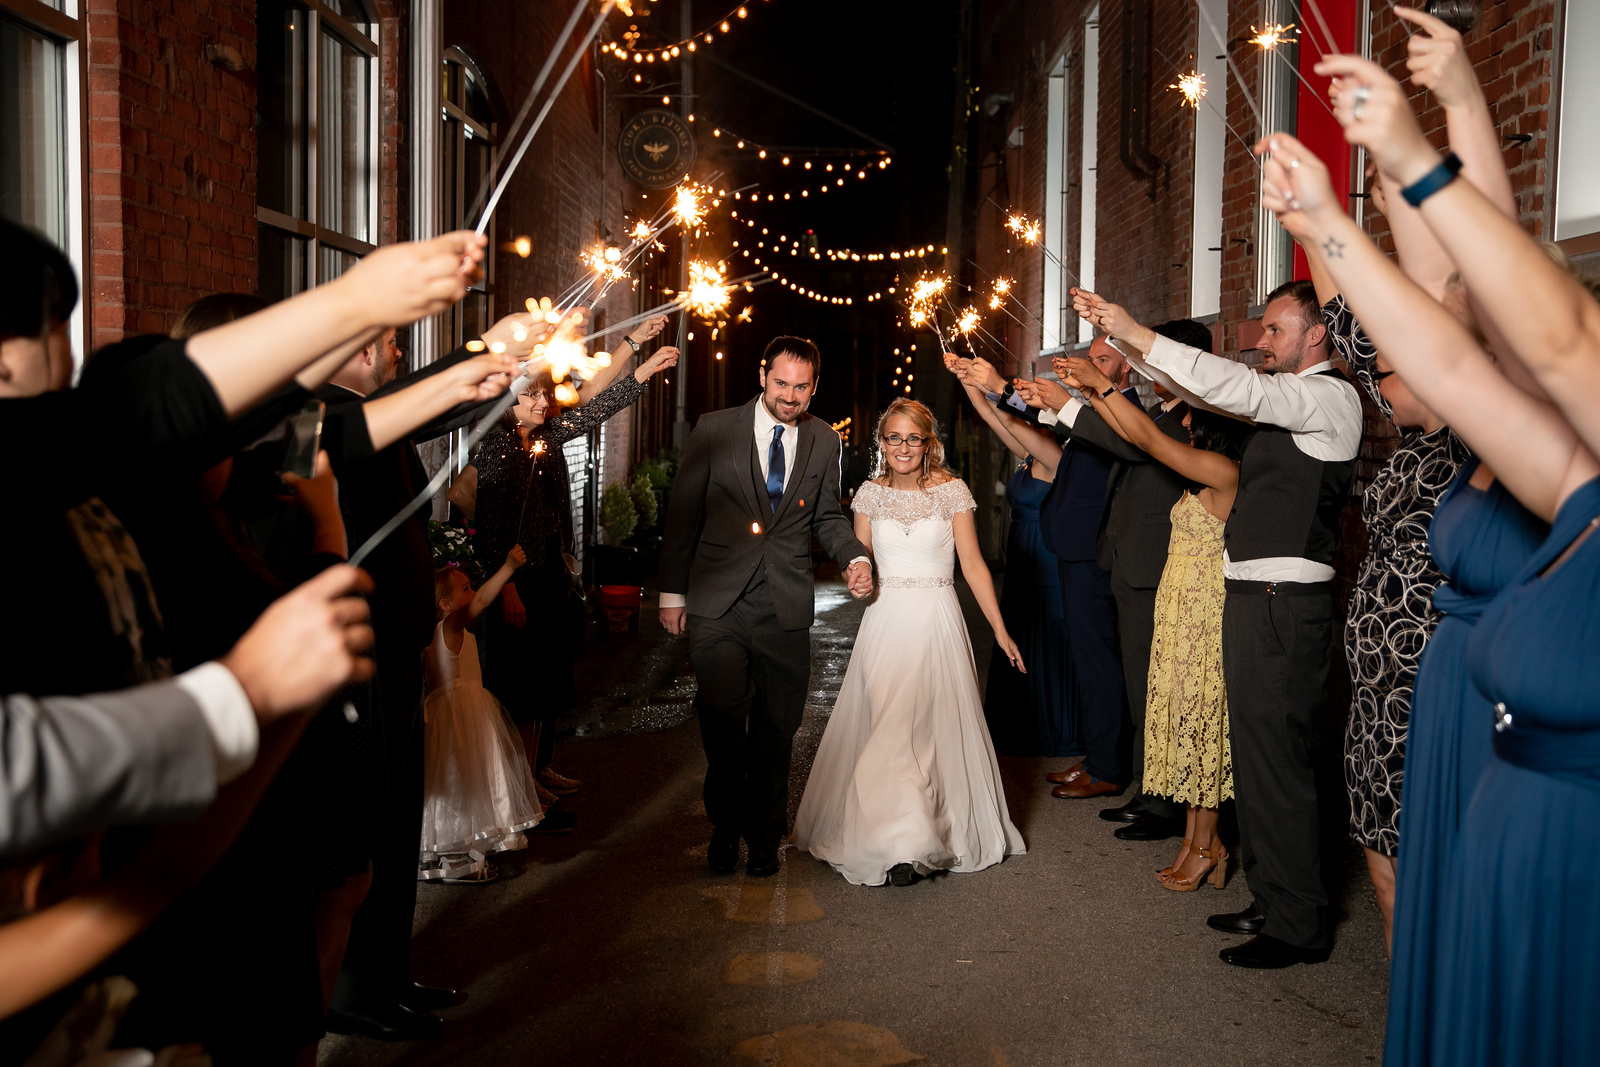 Bride and groom leaving their wedding reception as guests hold up sparklers as they walk through